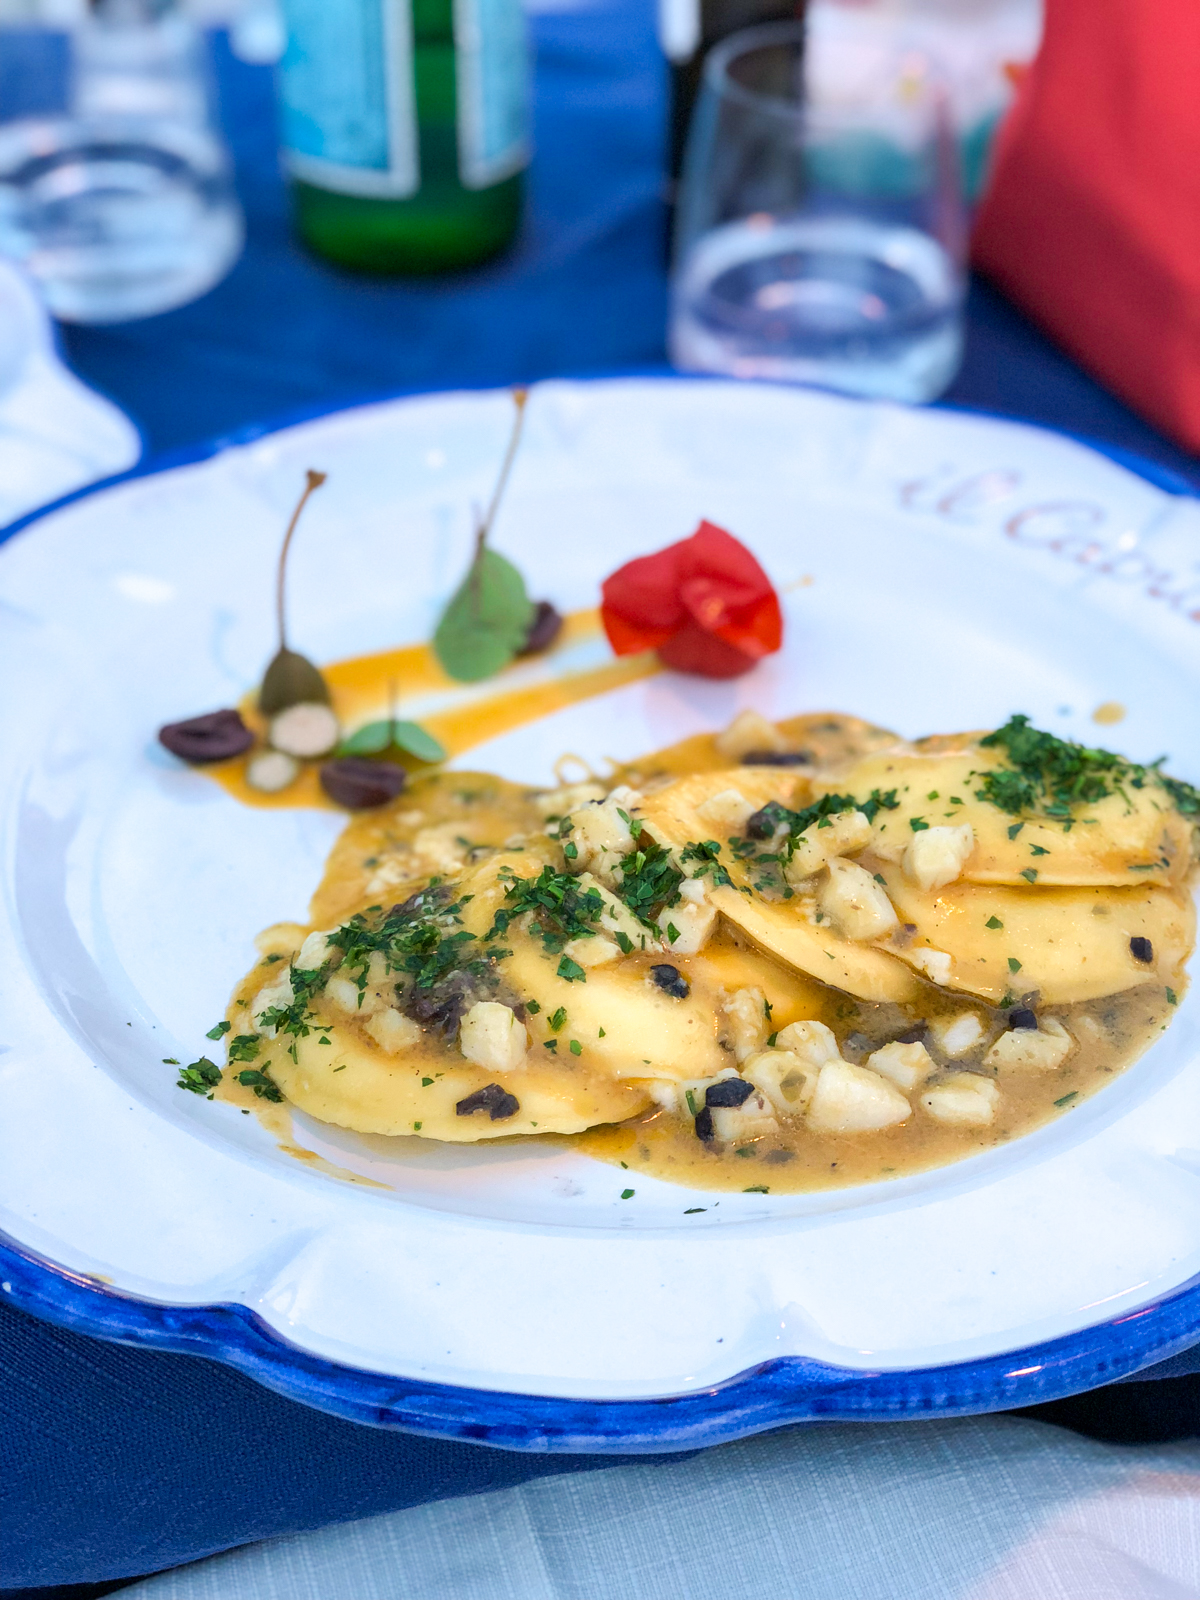 ravioli with cod in butter sauce